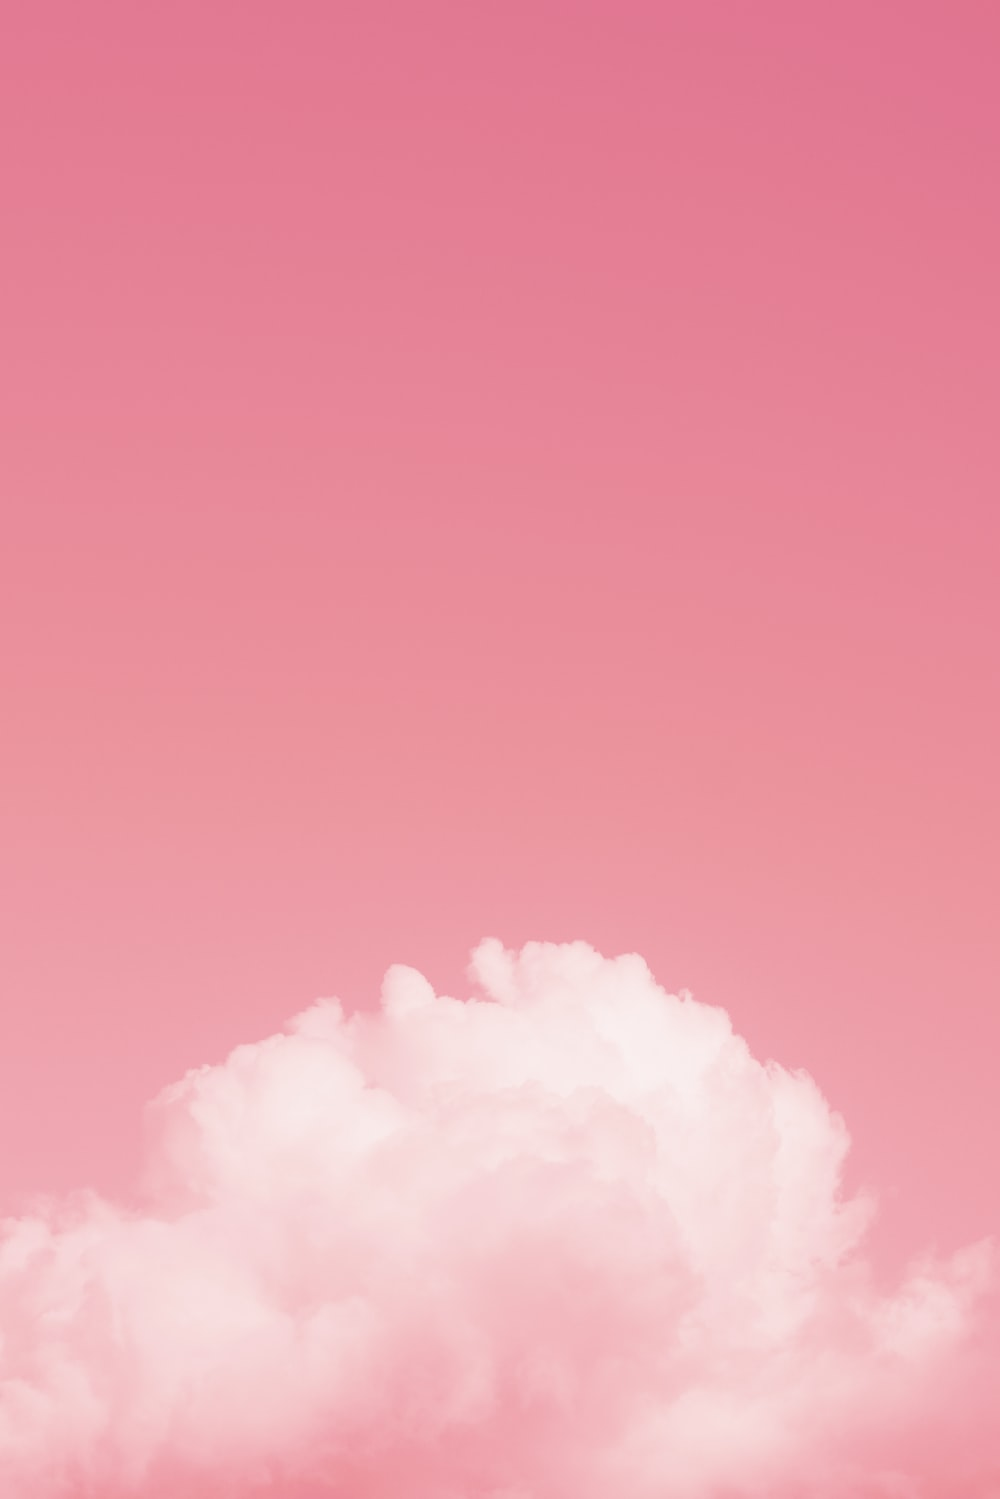 Pink Wallpapers HD Download [500 HQ] Unsplash